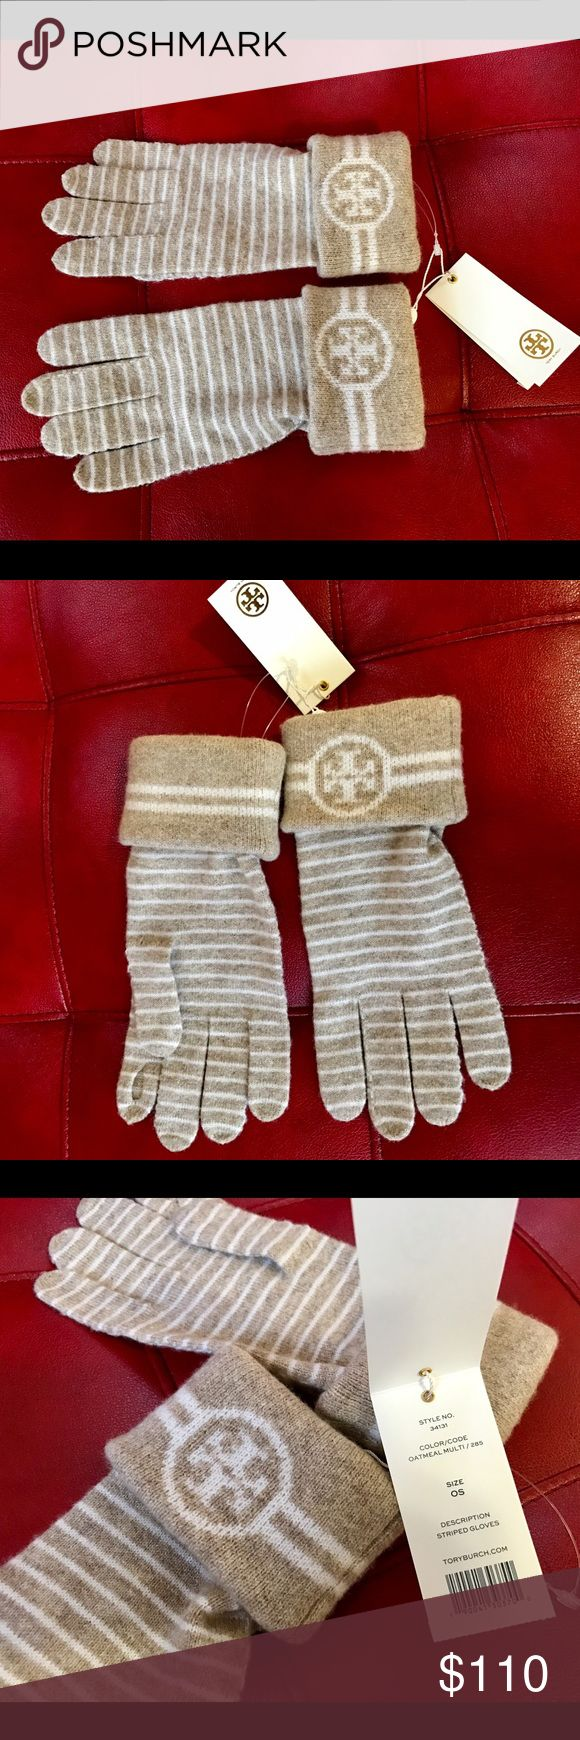 🎁Tory Burch Striped Merino wool Gloves🎁🎉 Brand new with tag in Oatmeal Multi colour  95% Merino wool  3% Polyamide 2% Elastane  Retail price is $125 plus taxes✨price is firm, unless you bundle ✨ Tory Burch Accessories Gloves & Mittens